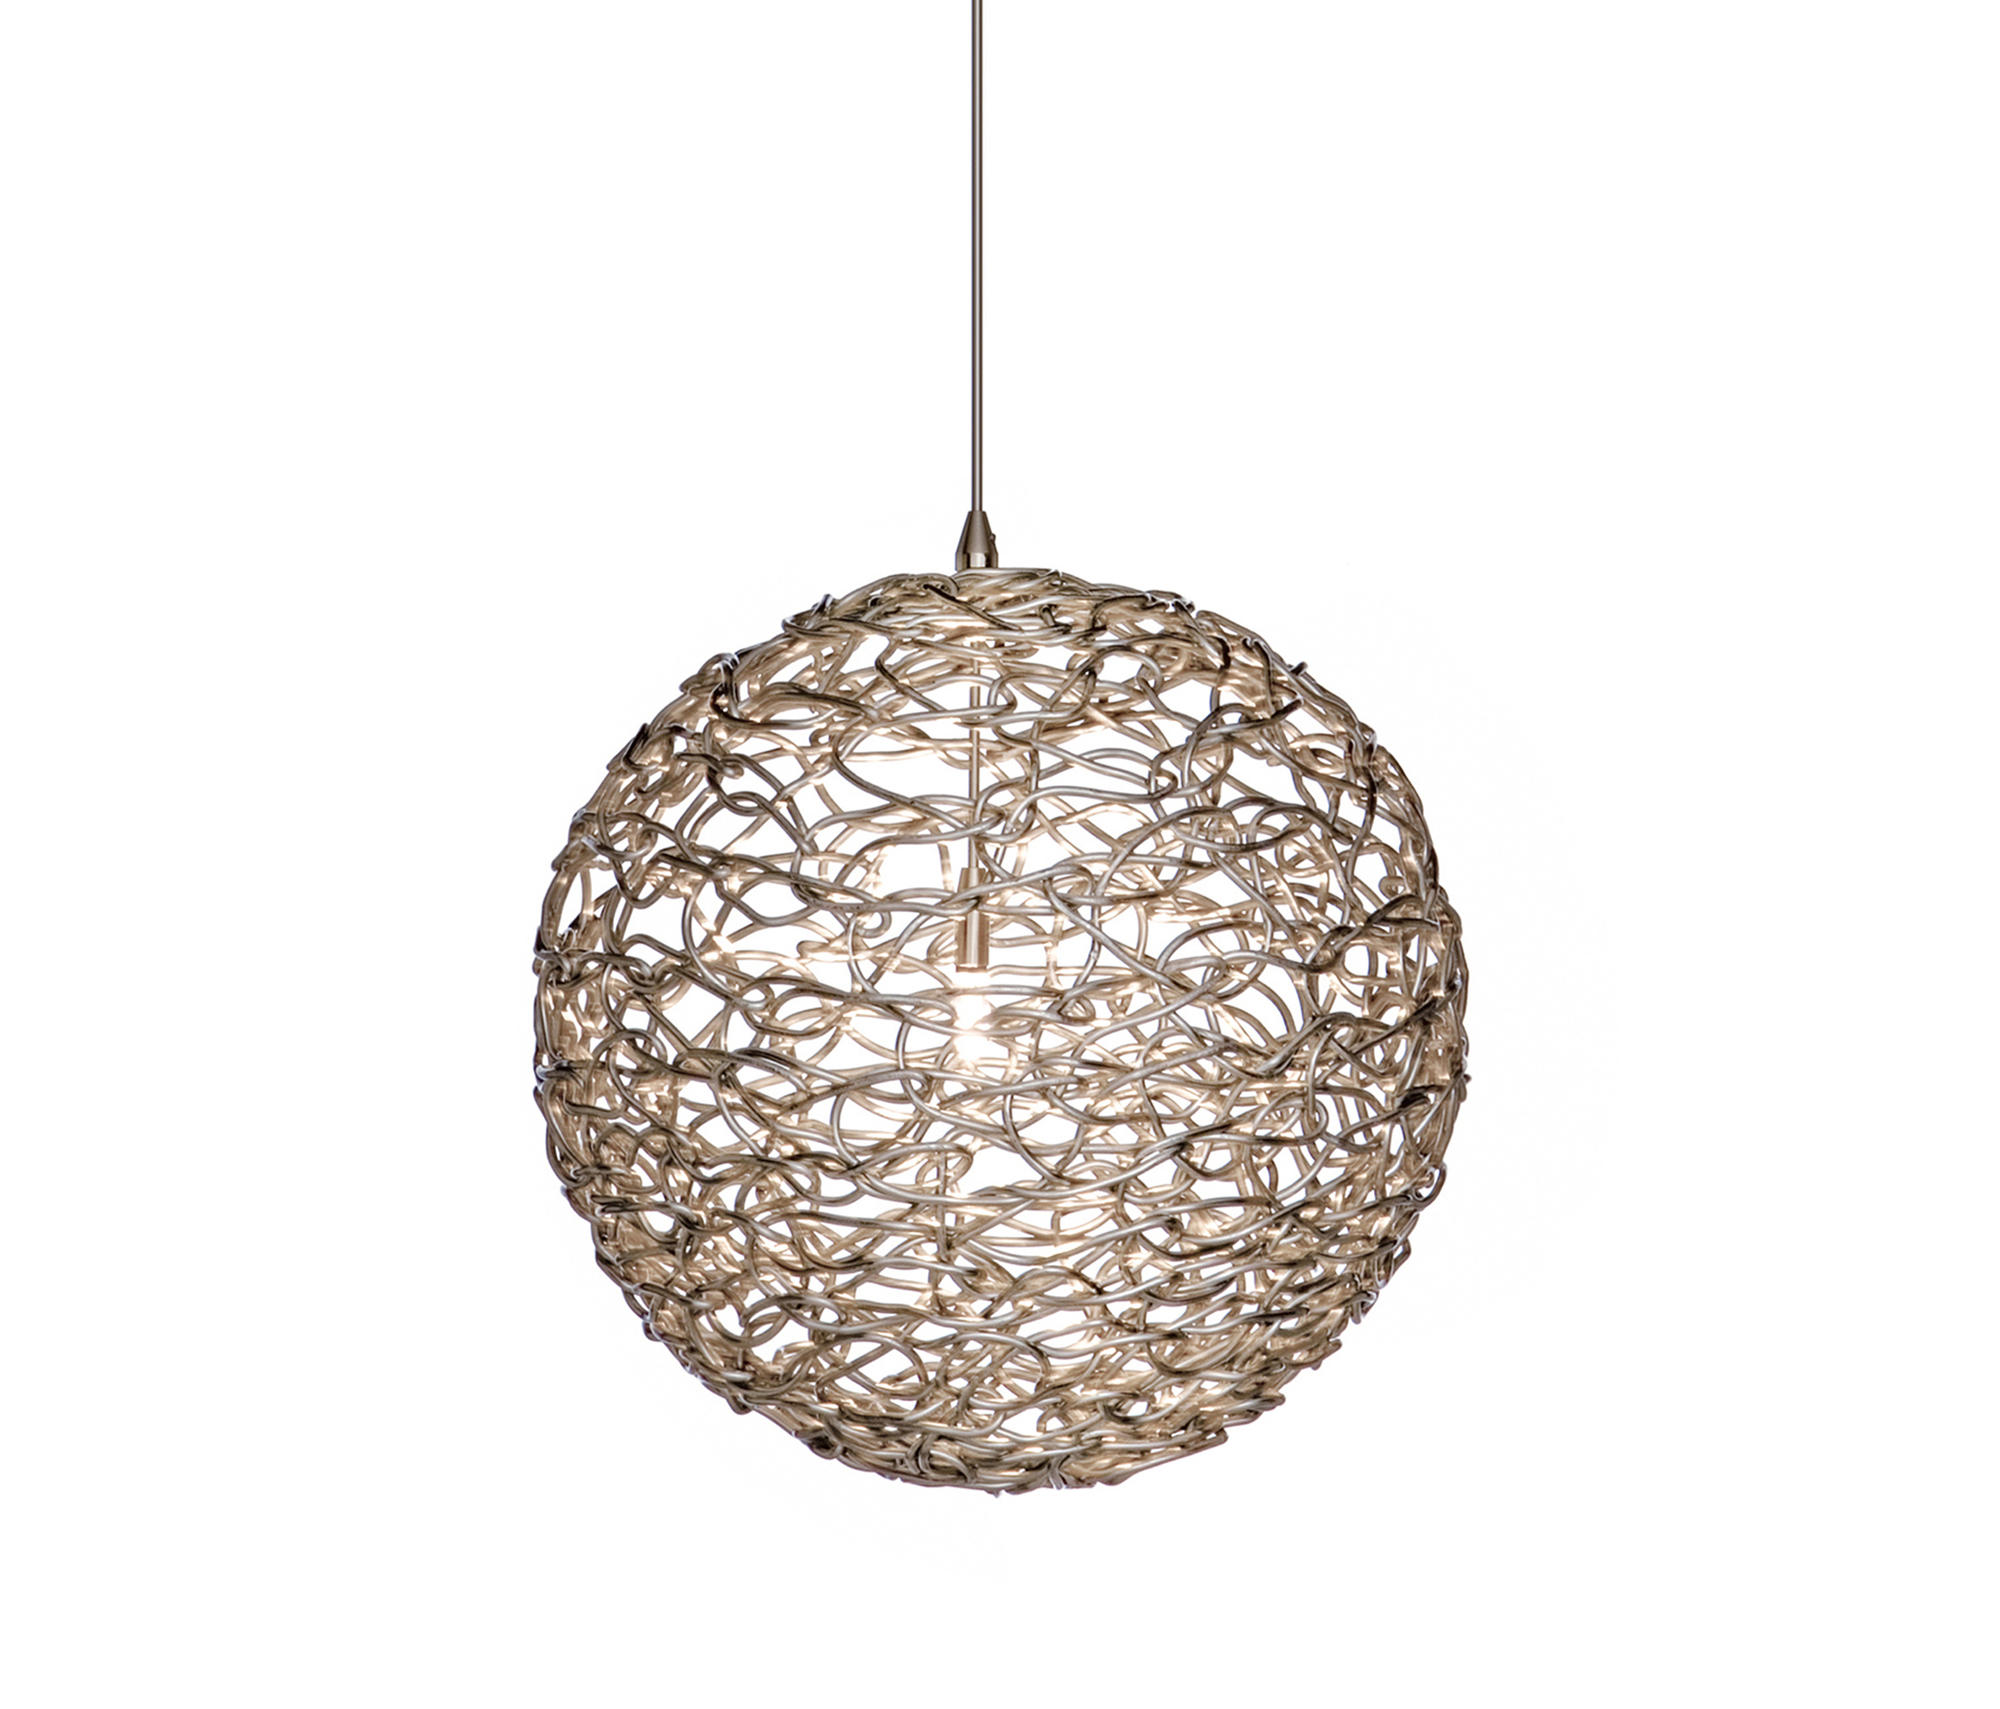 Ball Pendant Light 25 Suspended Lights From Harco Loor